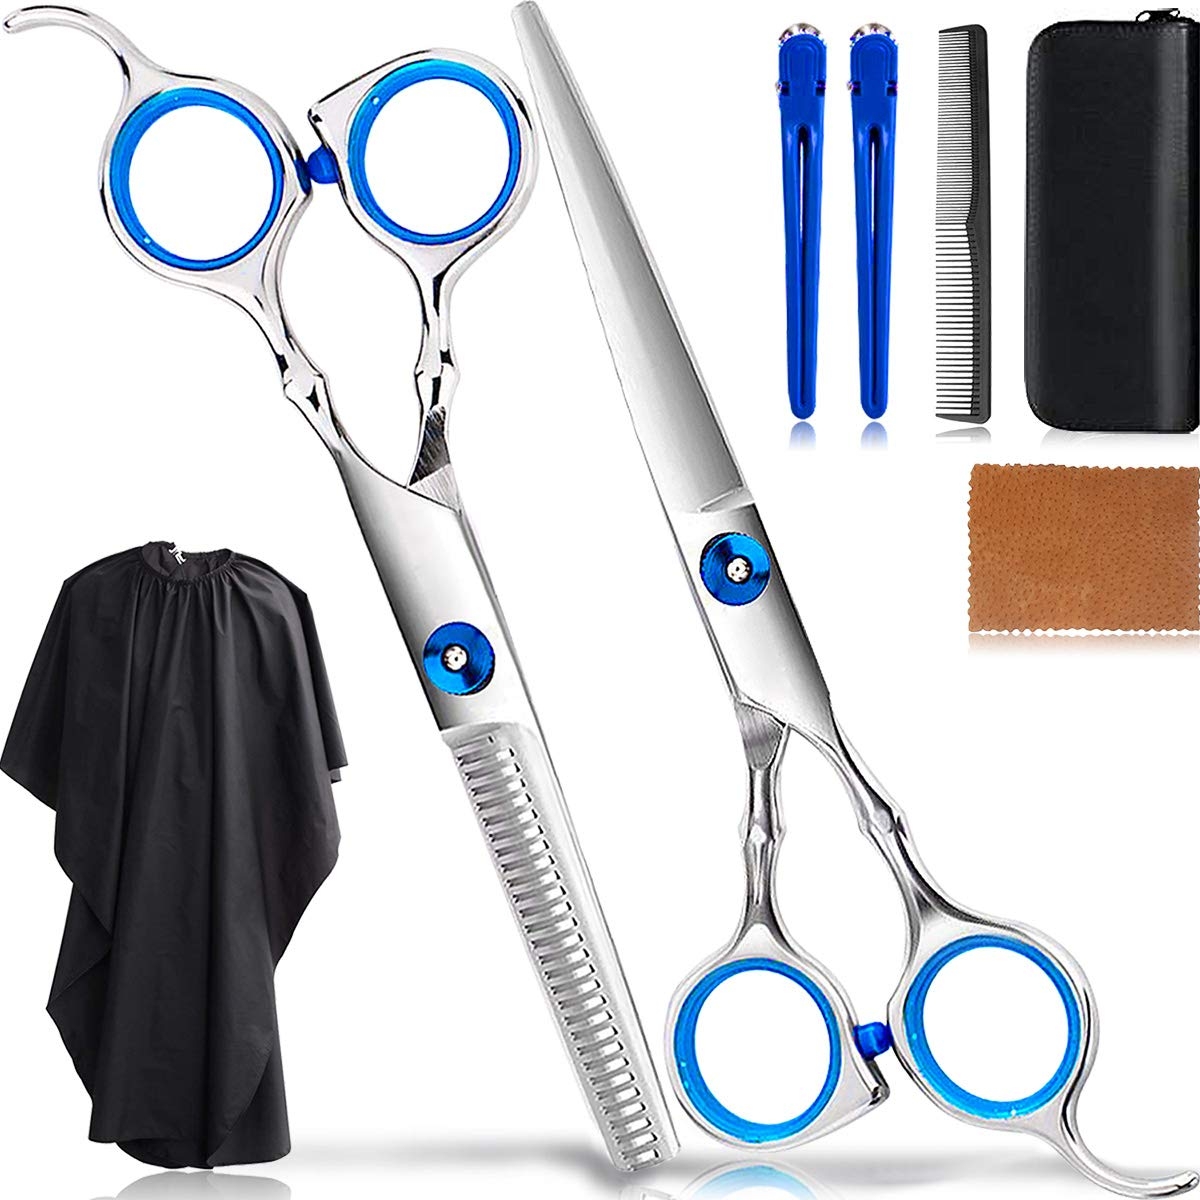 8Pcs Professional Hair Cutting Scissors Set/Hair Thinning Shears Kit/Salon Hairdressing Scissors Barber Tools/Teeth Texturing Texturizing Stainless Steel Sharp Wide Tooth Contain Cape Clips Comb Blue by Akrica Care